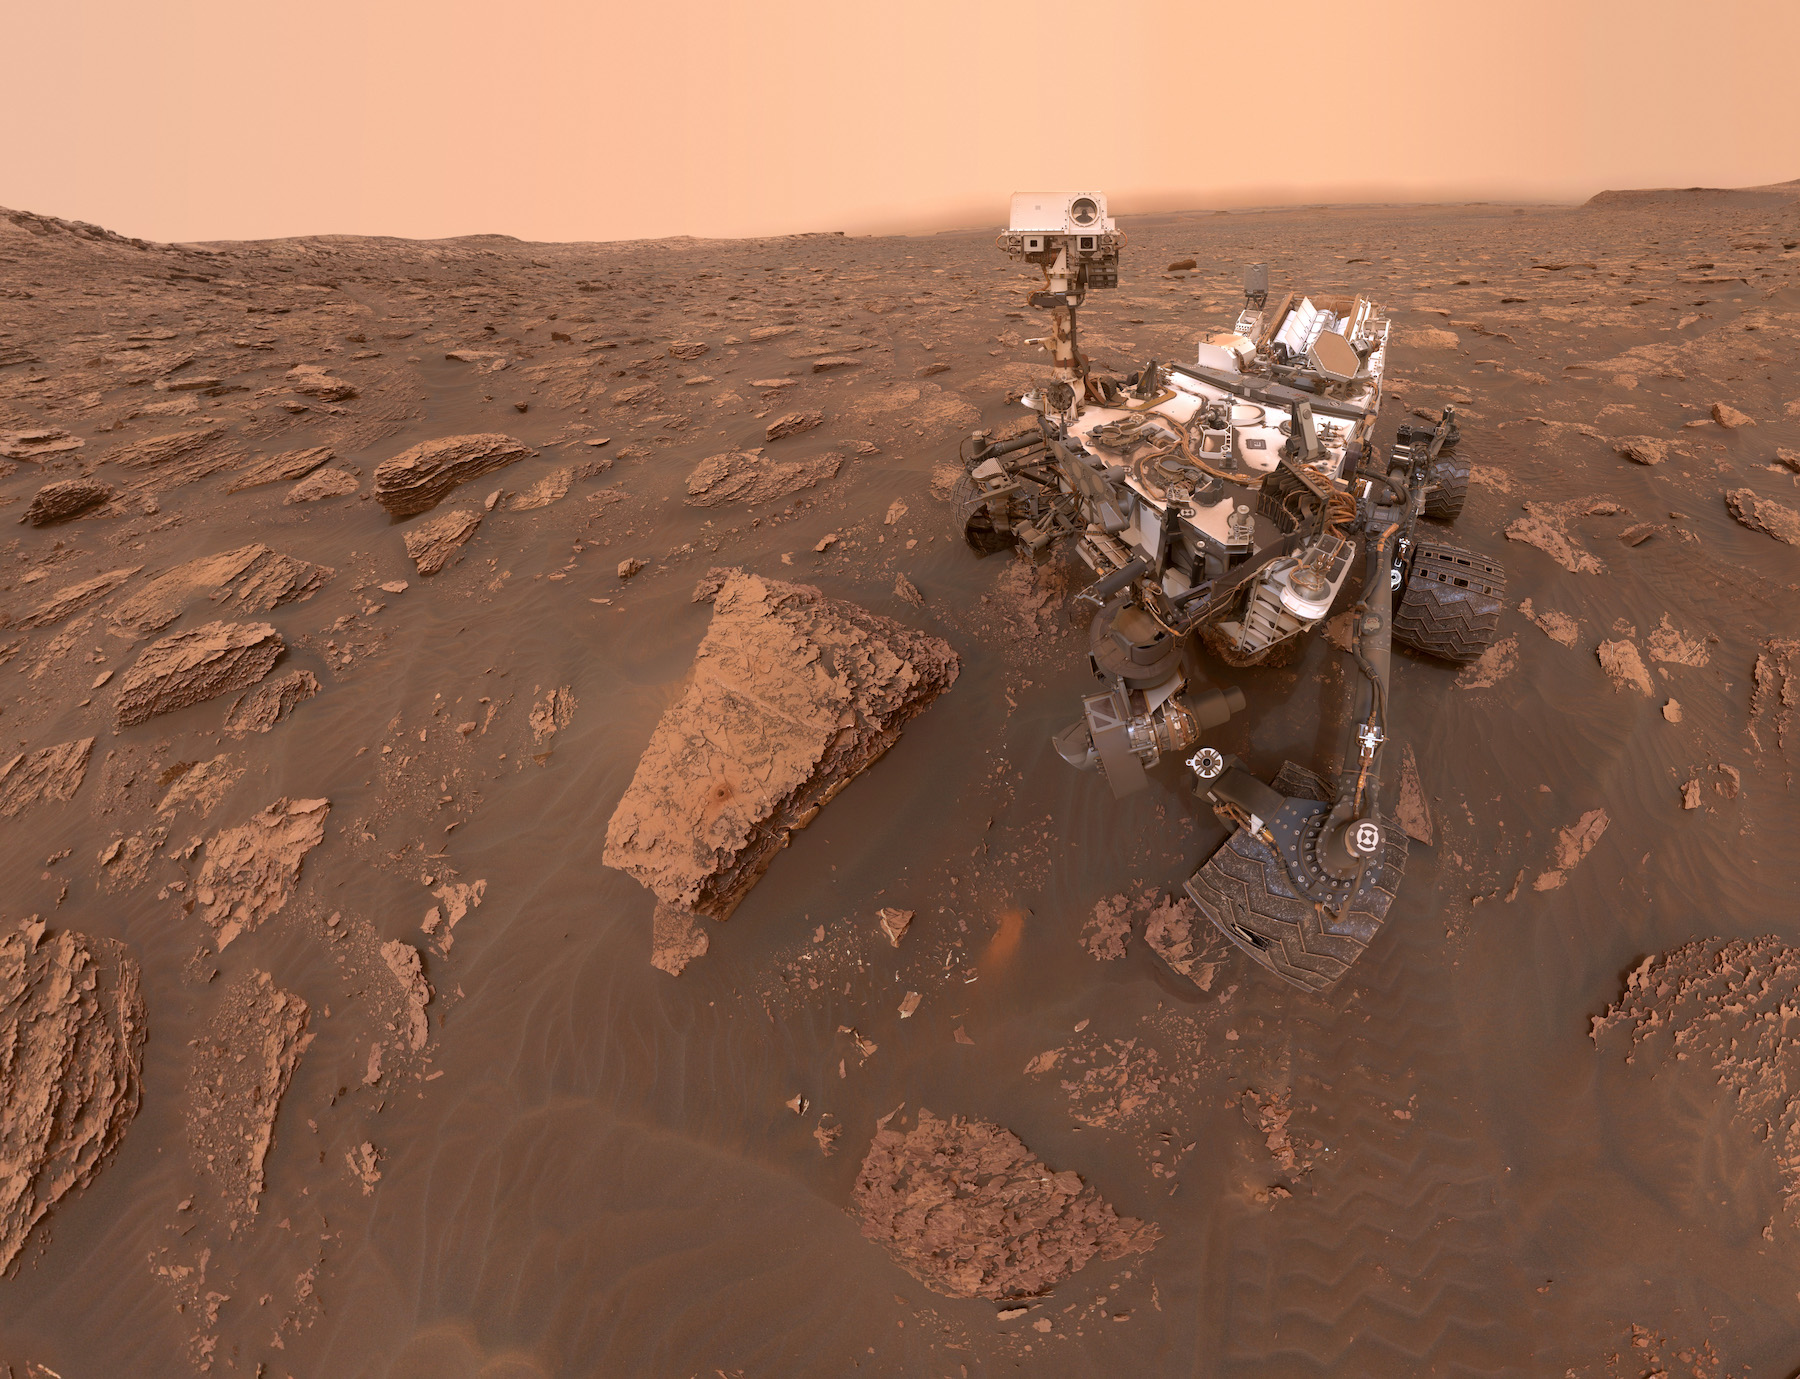 NASA's Curiosity rover is celebrating 8 years on Mars